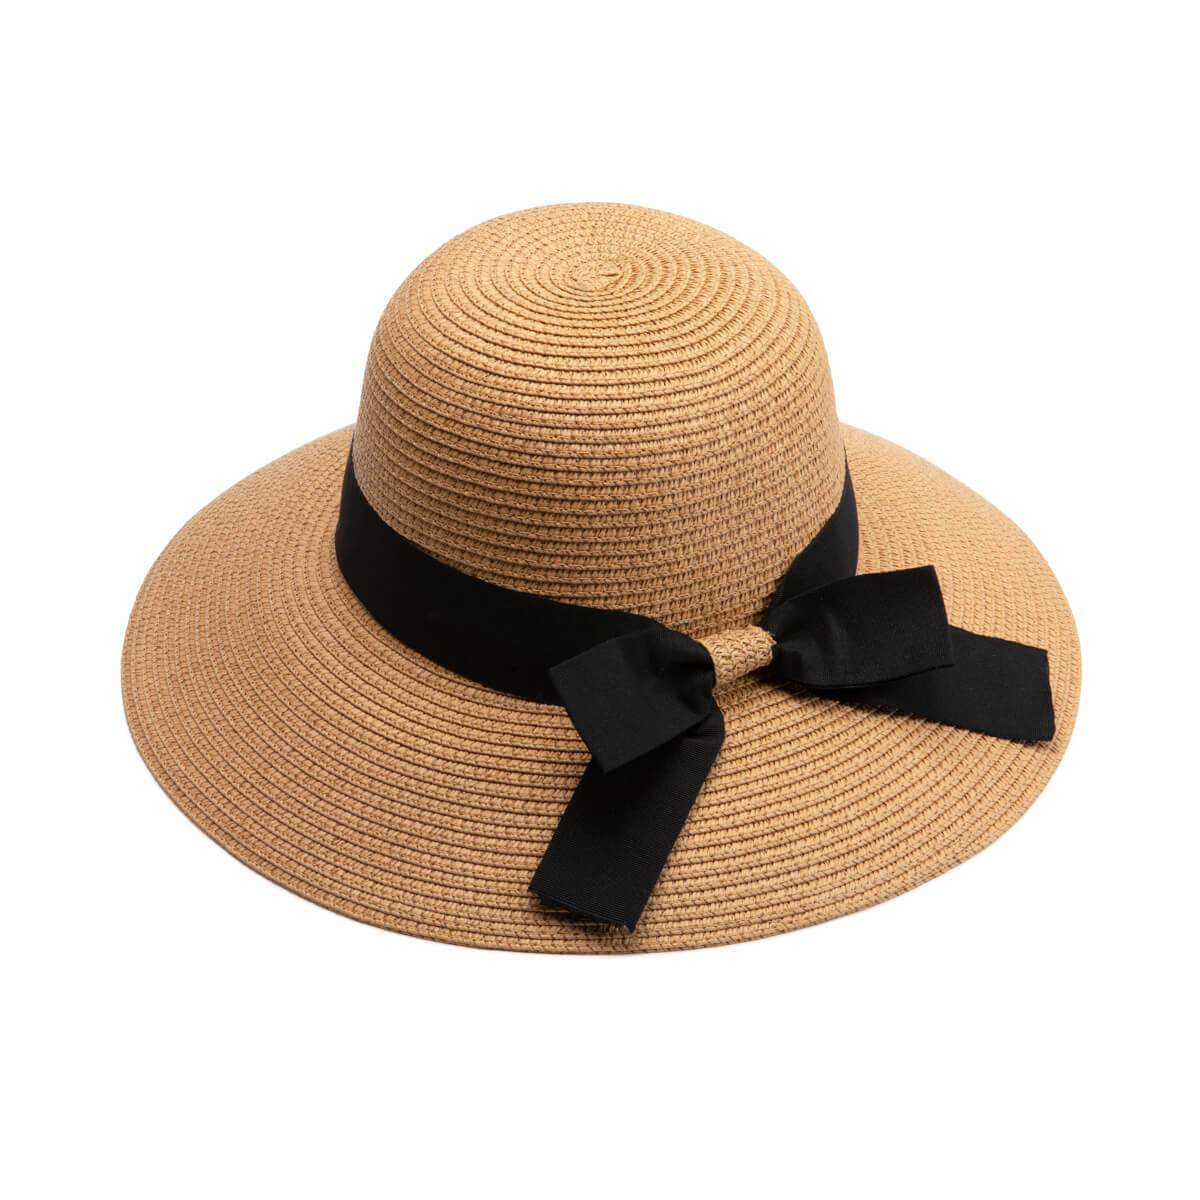 Straw Resort Wide Brim Hat